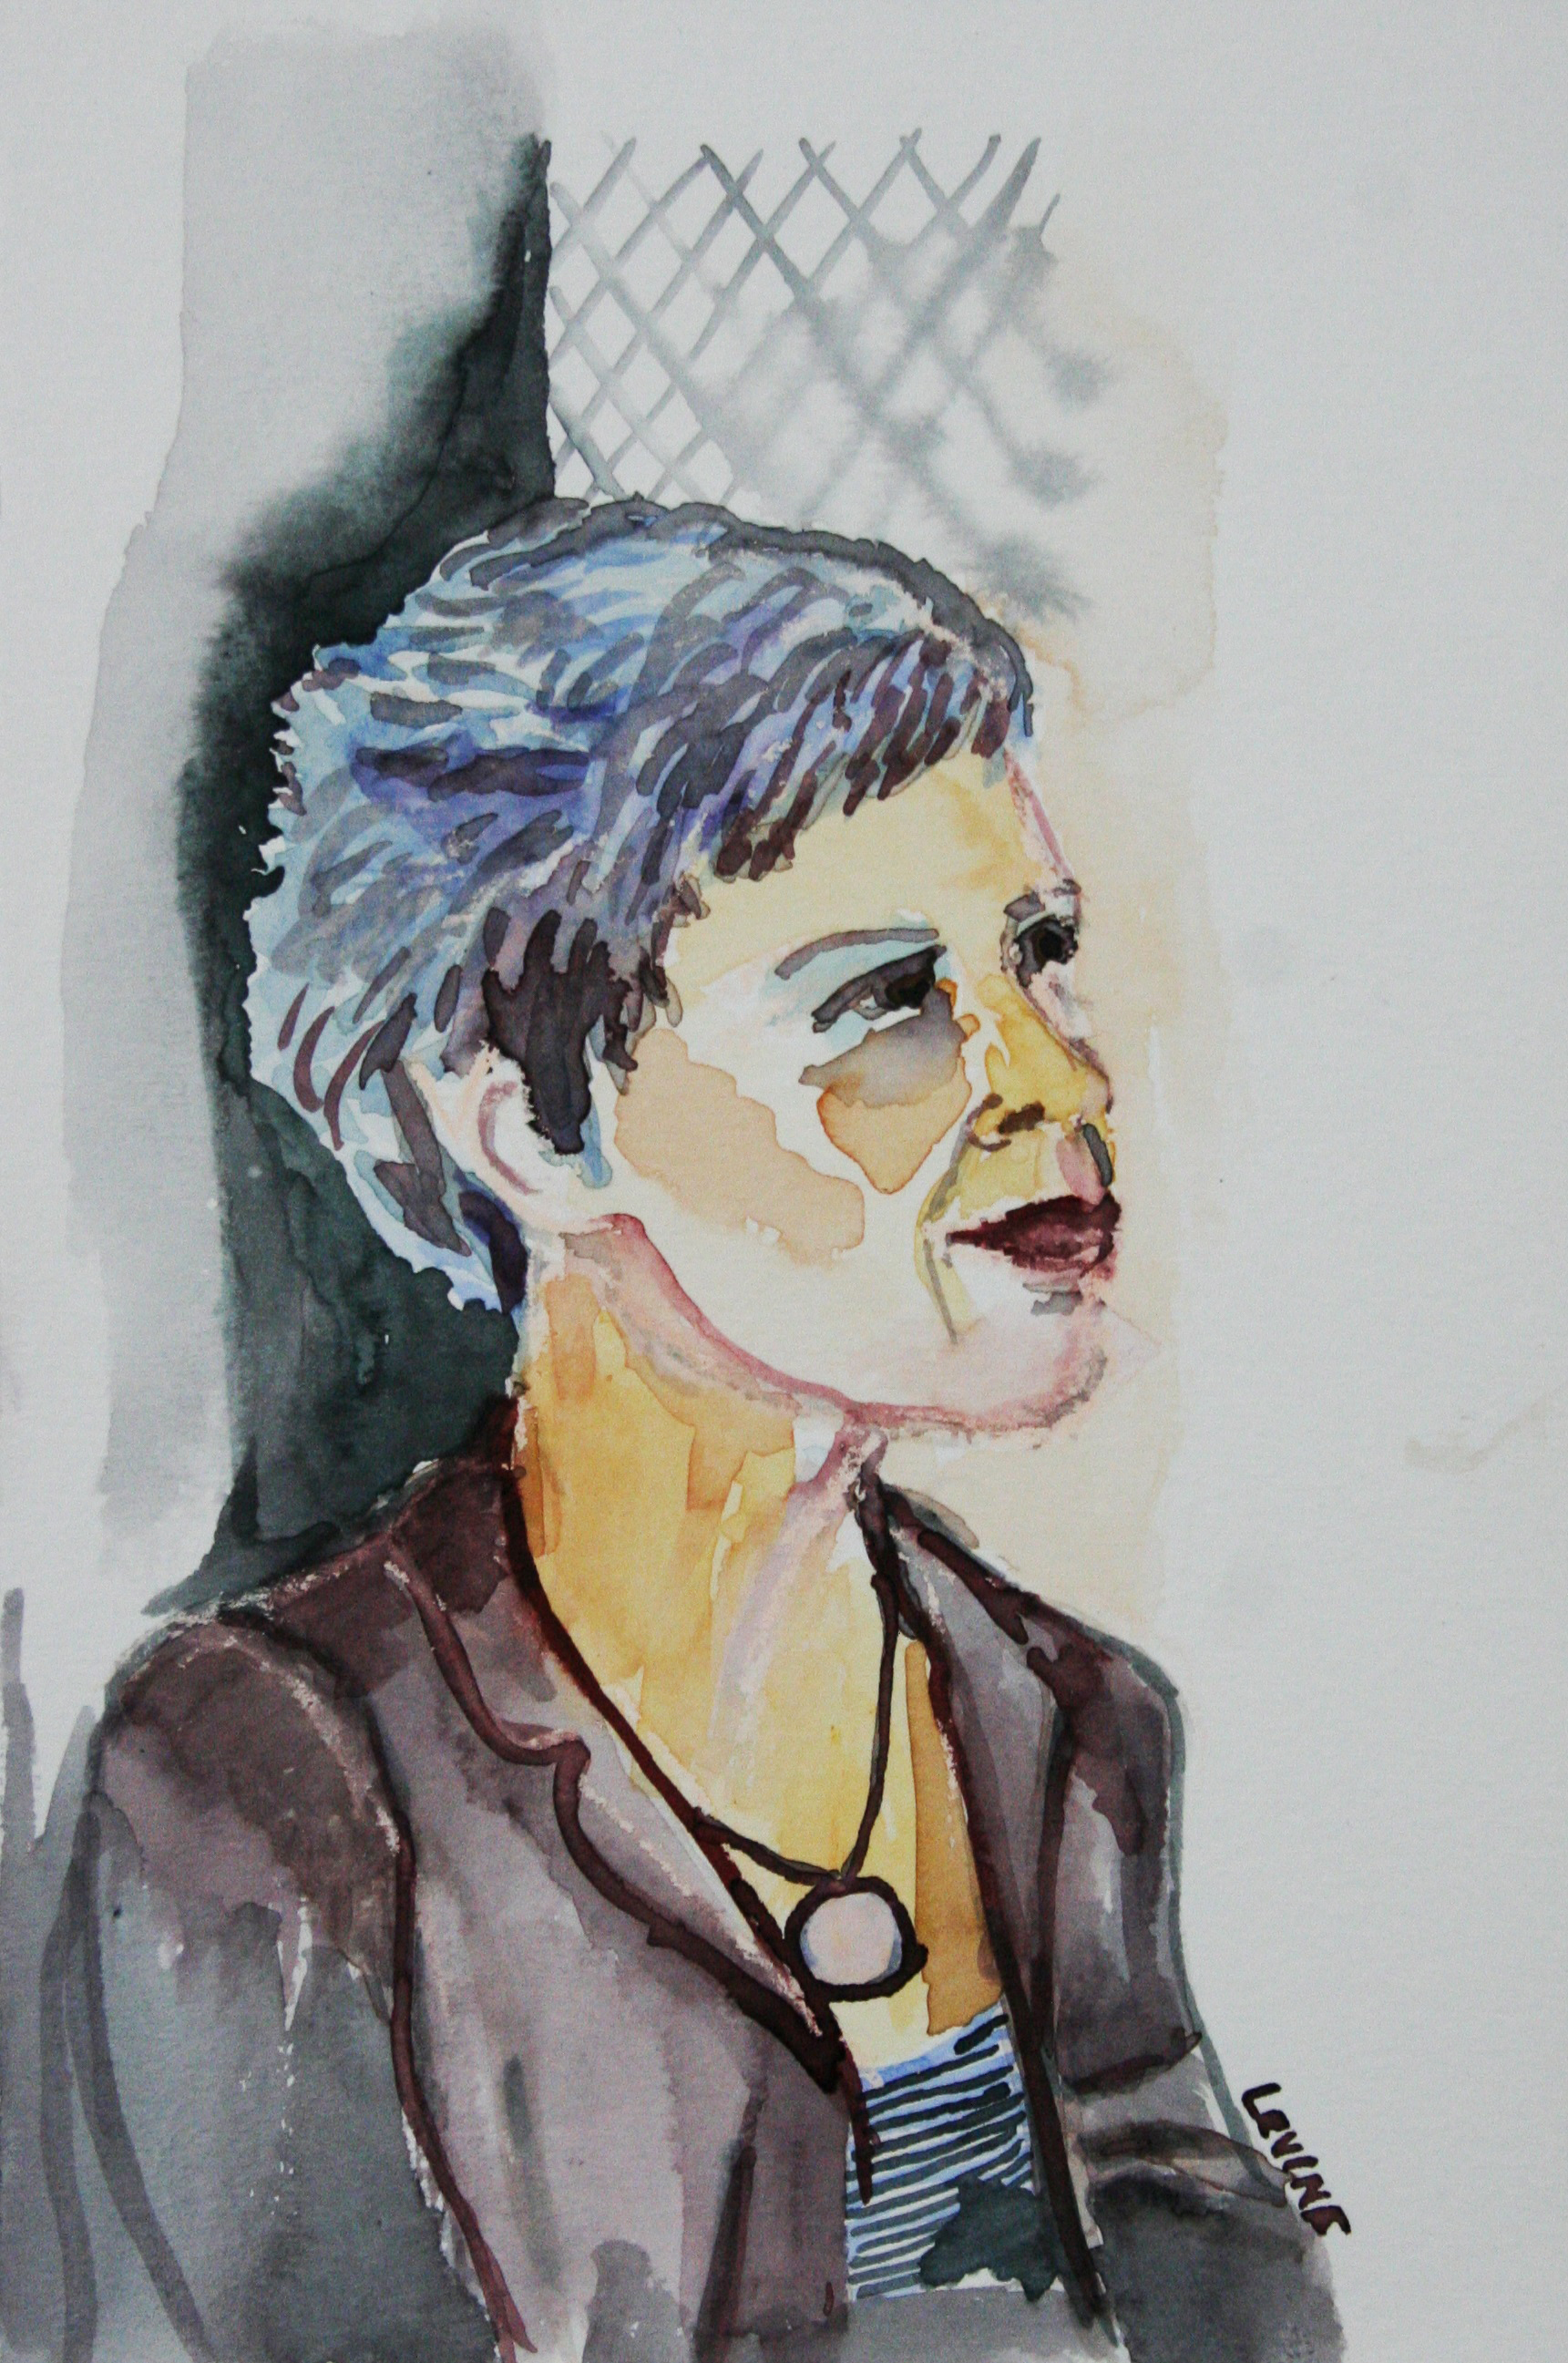 Phyllis Peterson Levine did this 3-hour watercolor drawing.